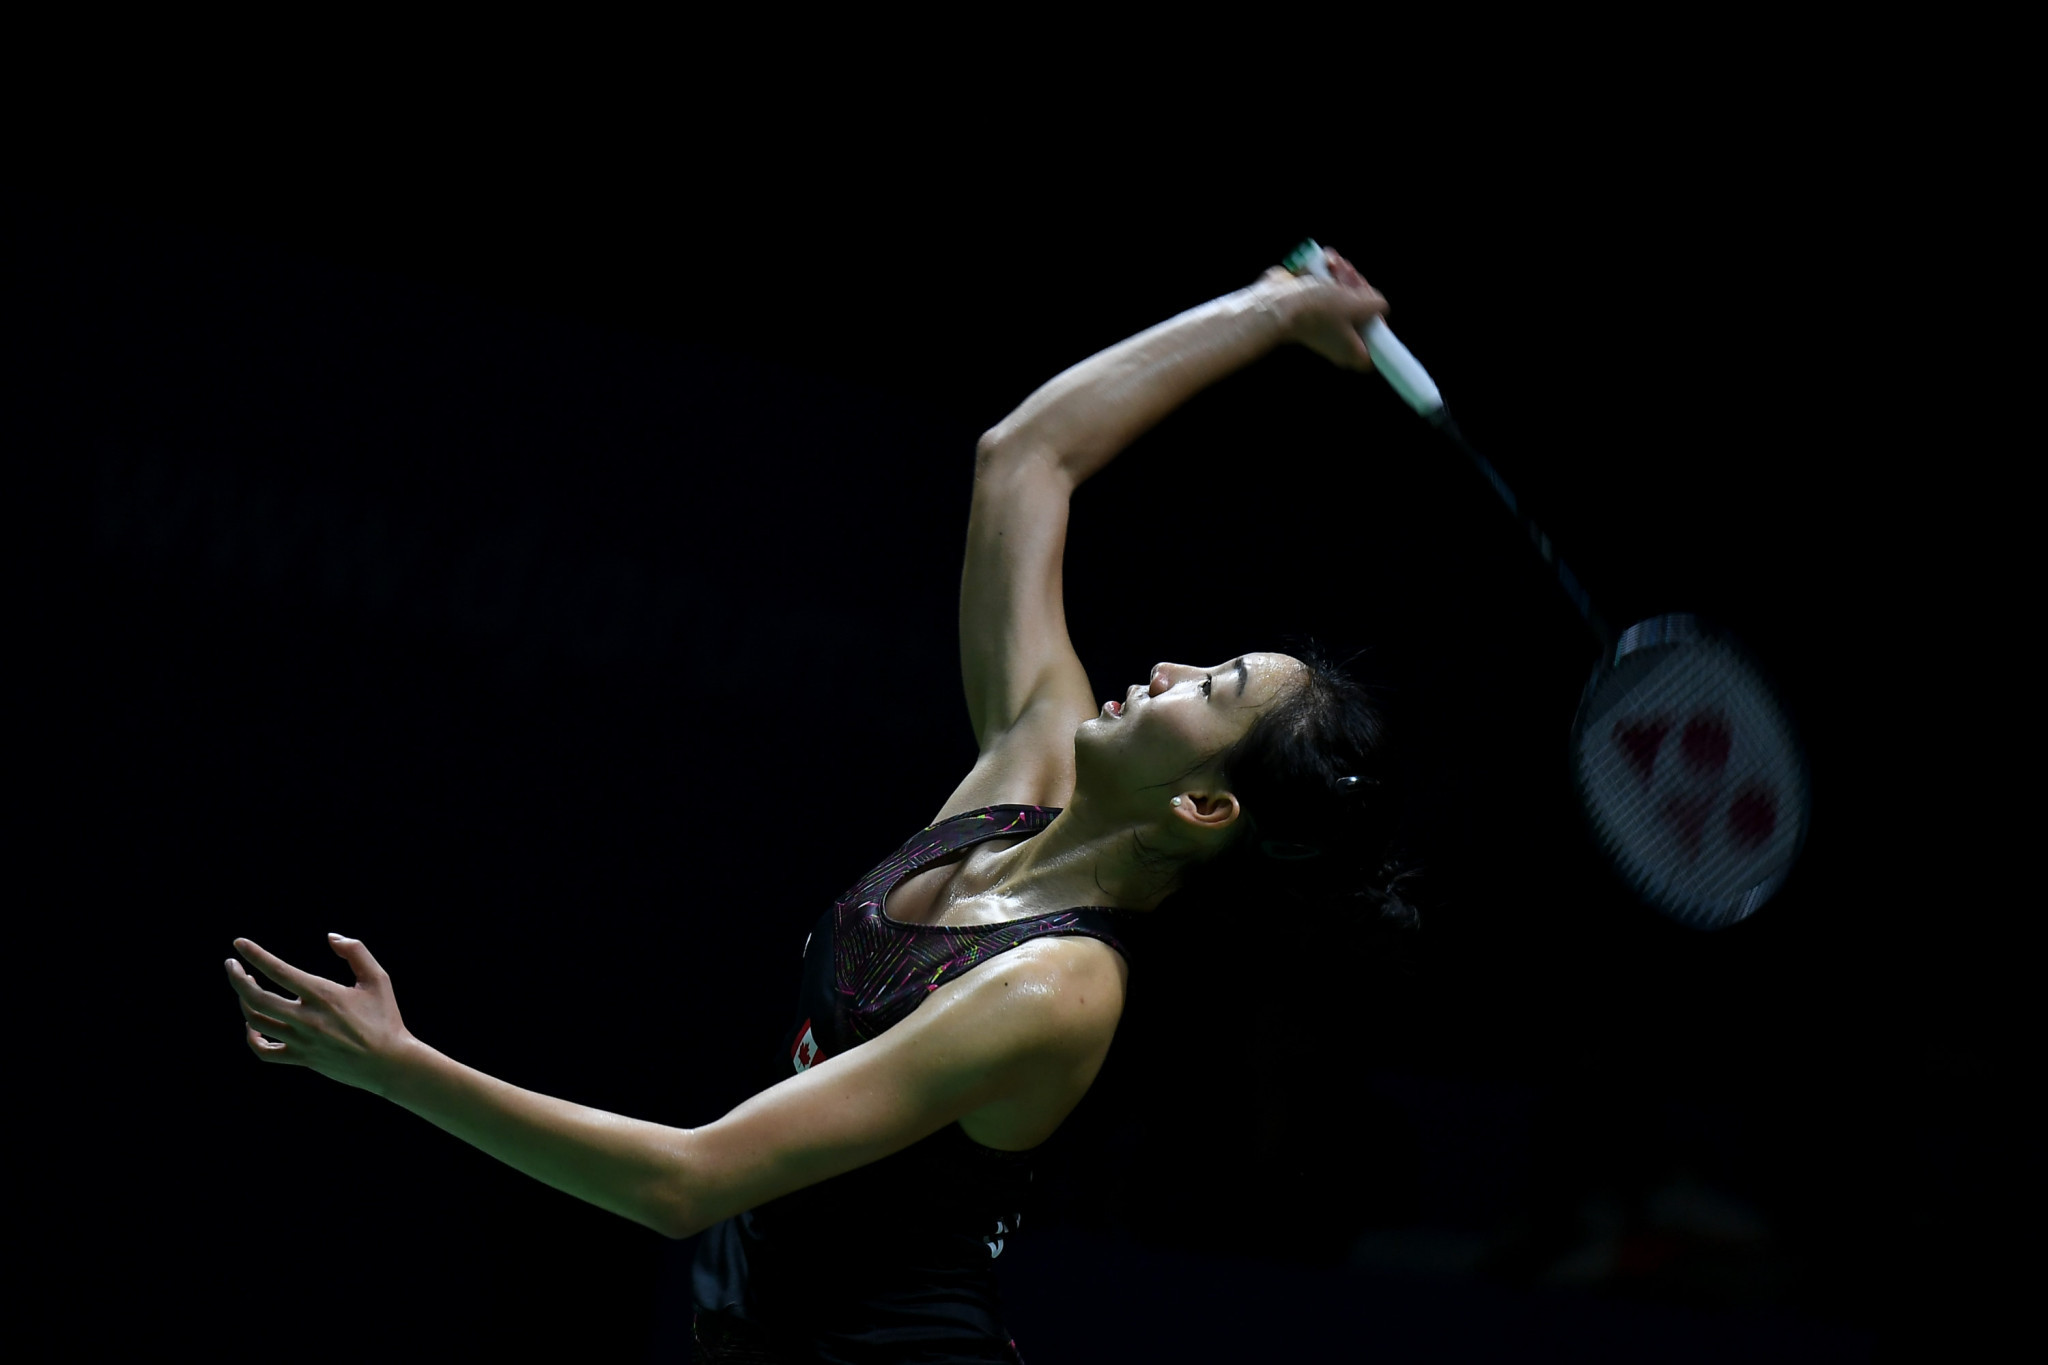 Canada's Michelle Li progressed to the semi-final of the Pan American Individual Badminton Championships ©Getty Images